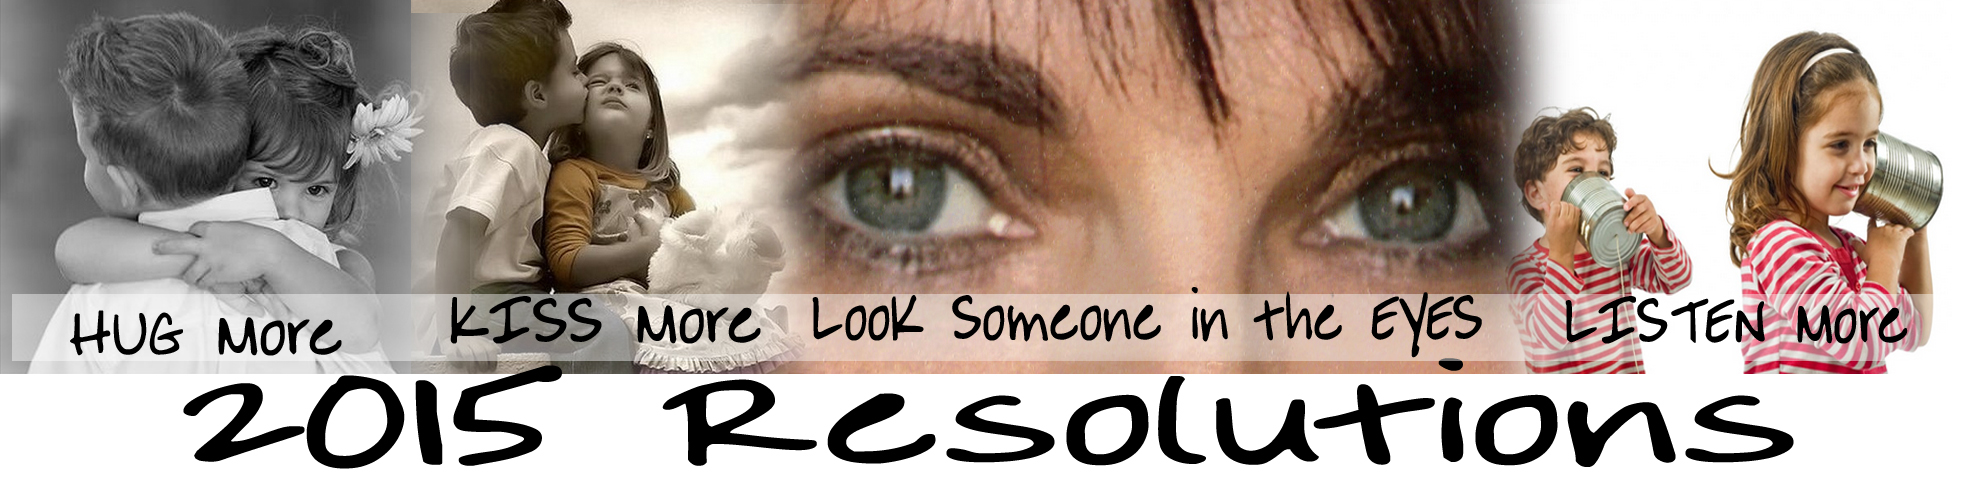 2015 1st Resolutions HUG more, KISS more, and look someone in the EYES